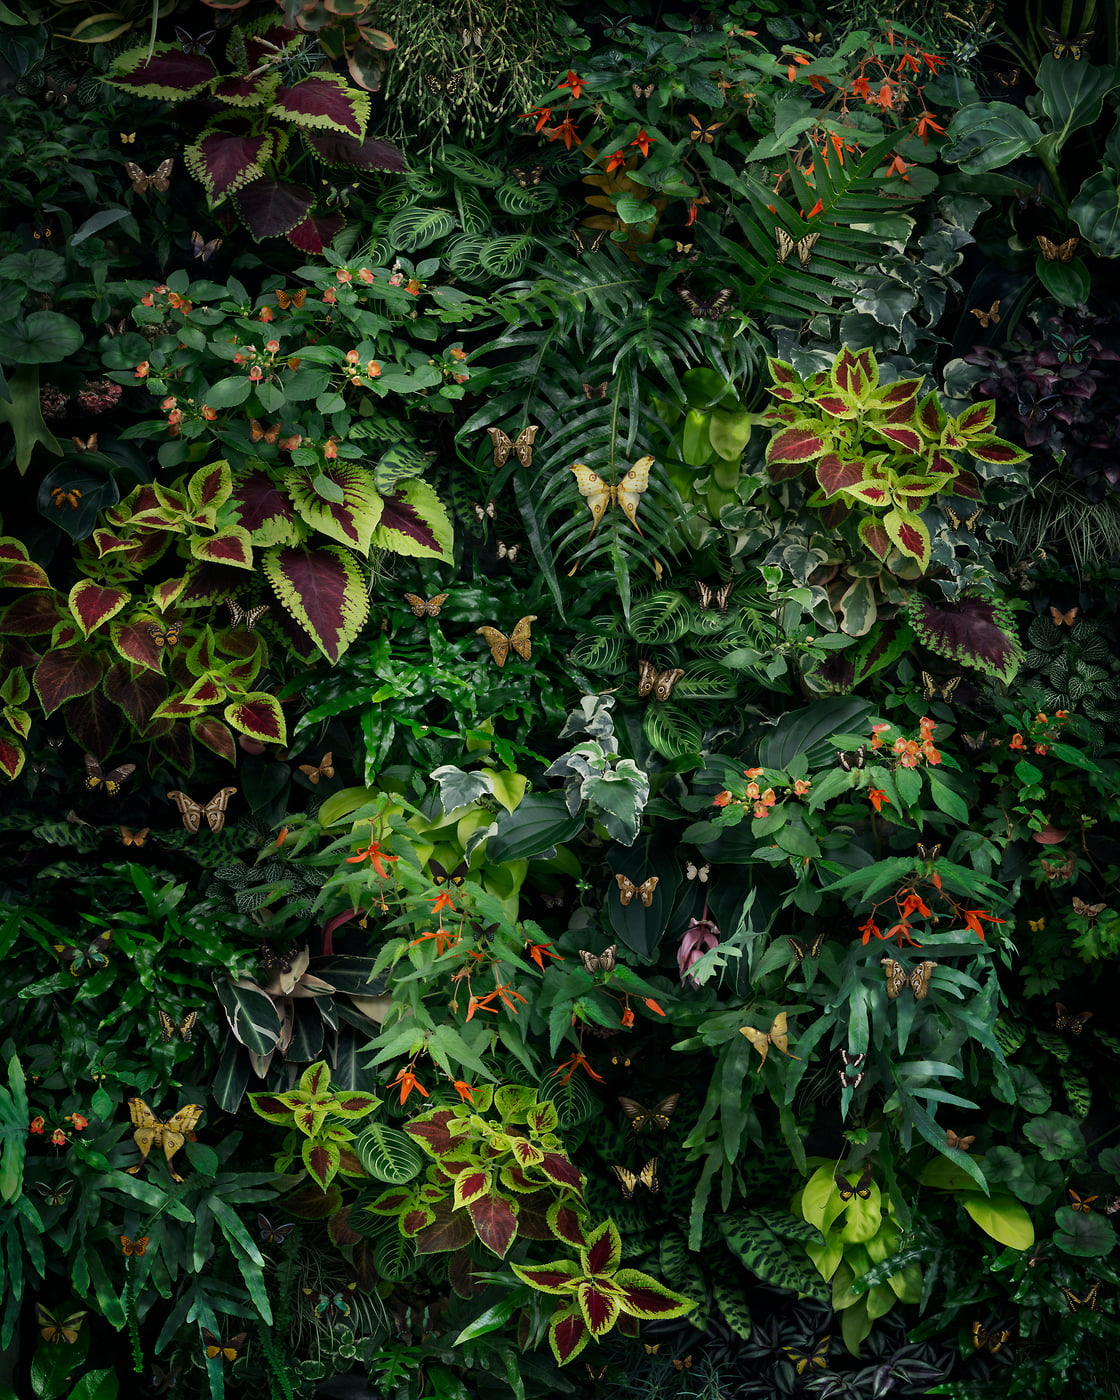 180 megapixels! A very high resolution, large-format VAST photo print of plants covering the ground; photograph created by Nick Pedersen